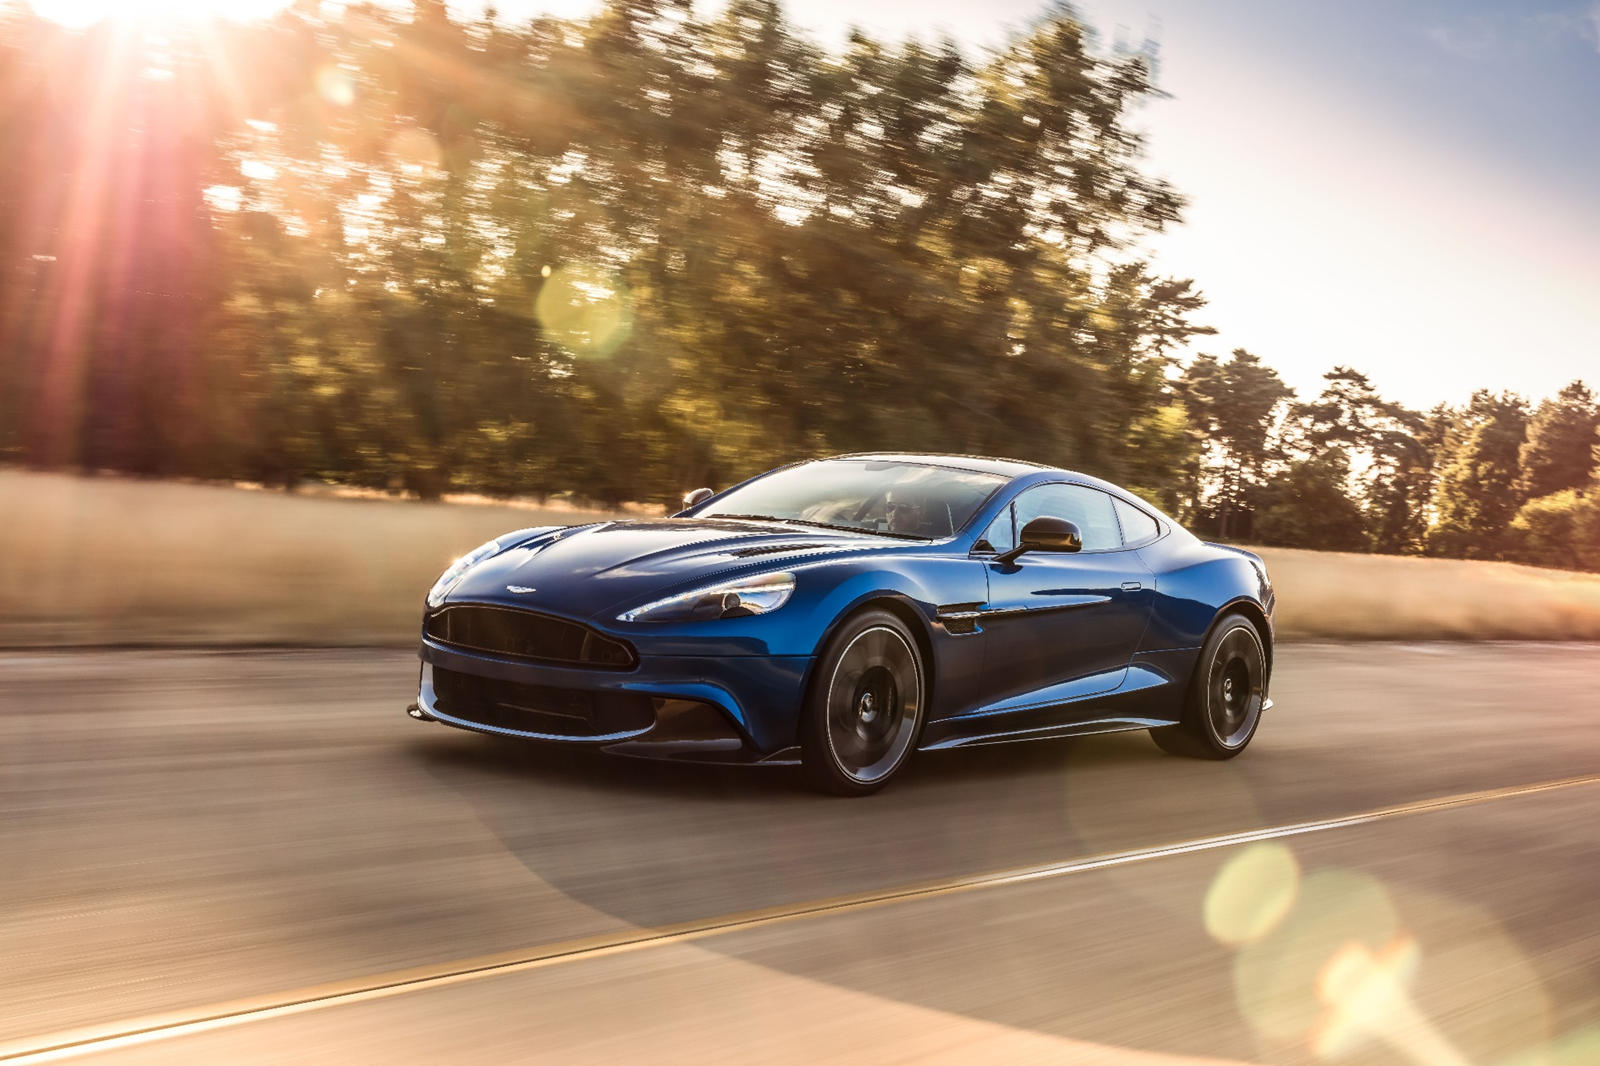 2019 Aston Martin Vanquish Coupe Review Trims Specs Price New Interior Features Exterior Design And Specifications Carbuzz